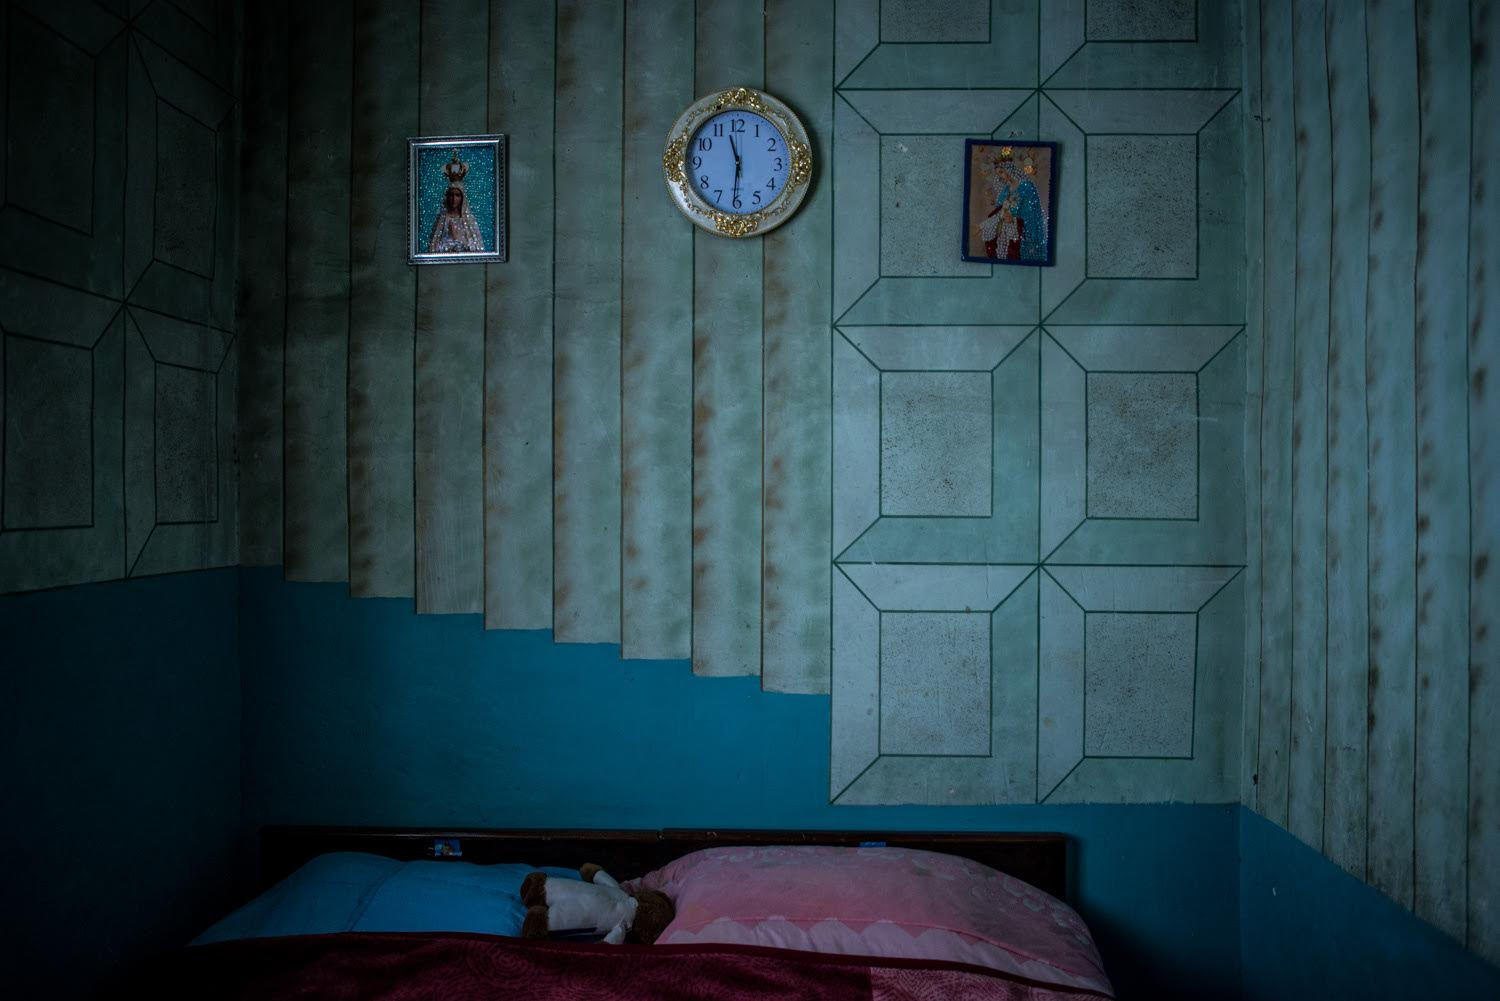 Syrian Refugees housing in Yerevan - Photo credit Anush Babajanyan on assignment for the Armenian Redwood Project